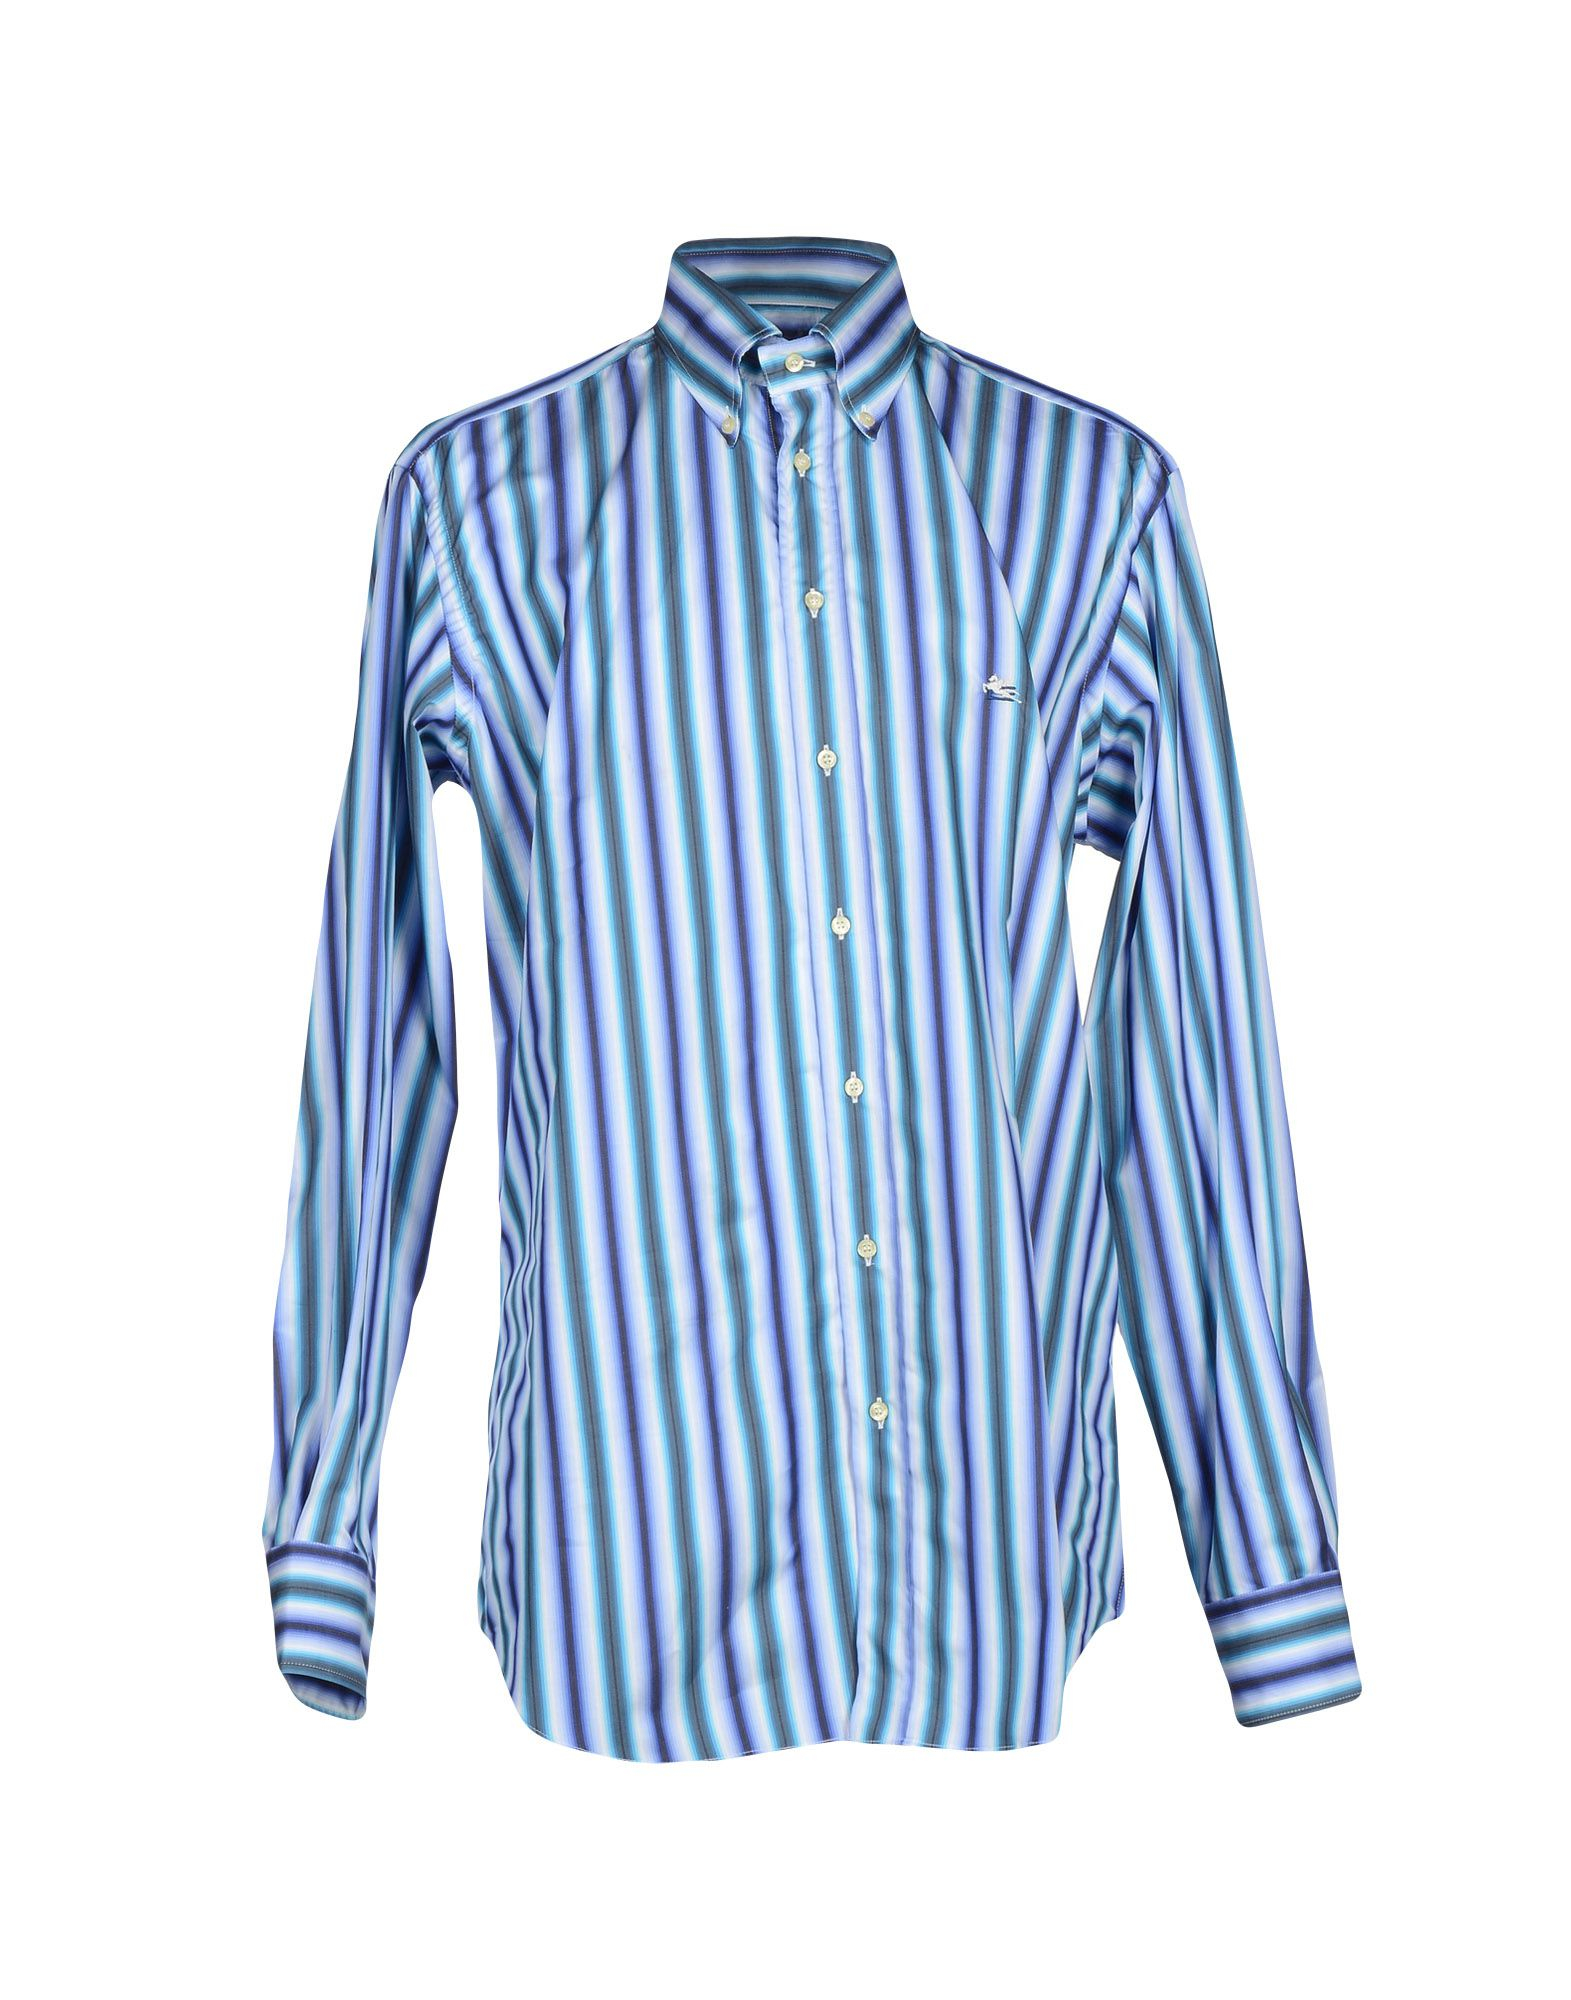 Etro shirt in blue for men lyst for Etro men s shirts